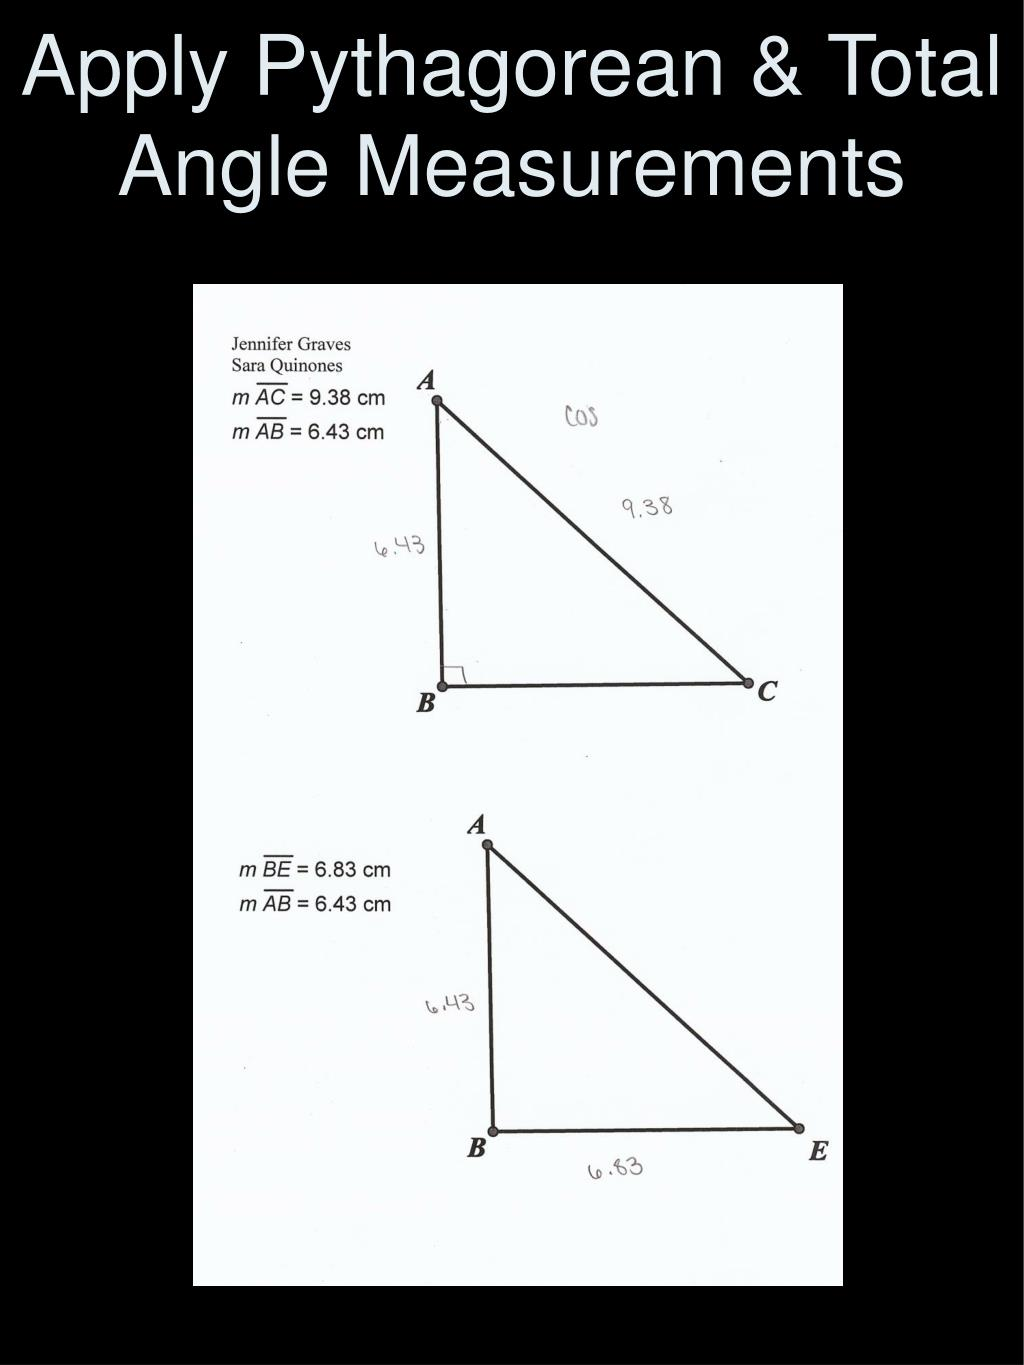 Apply Pythagorean & Total Angle Measurements